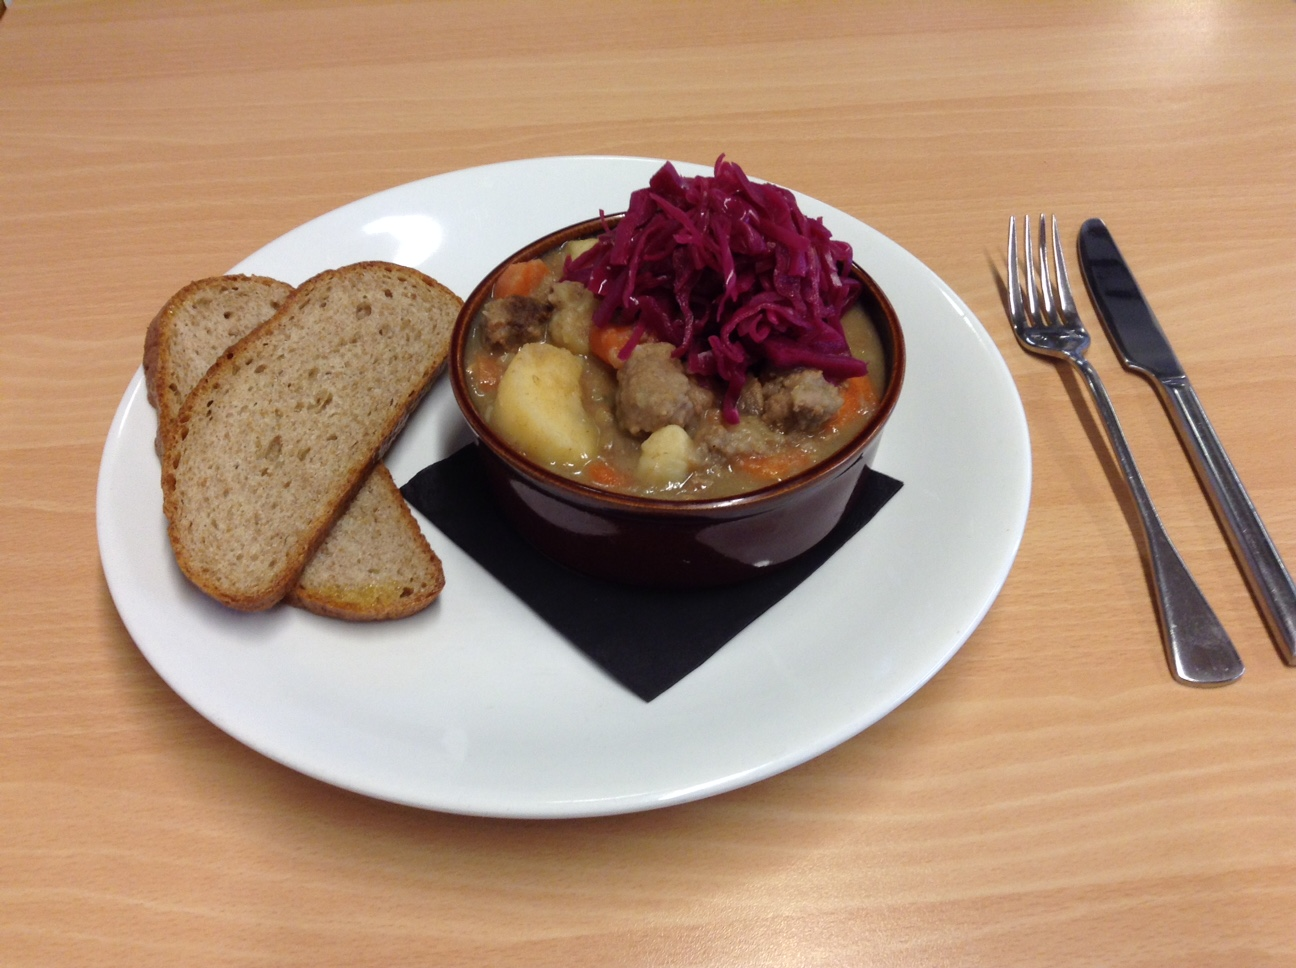 Scouse served at the maritime dining room with red cabbage